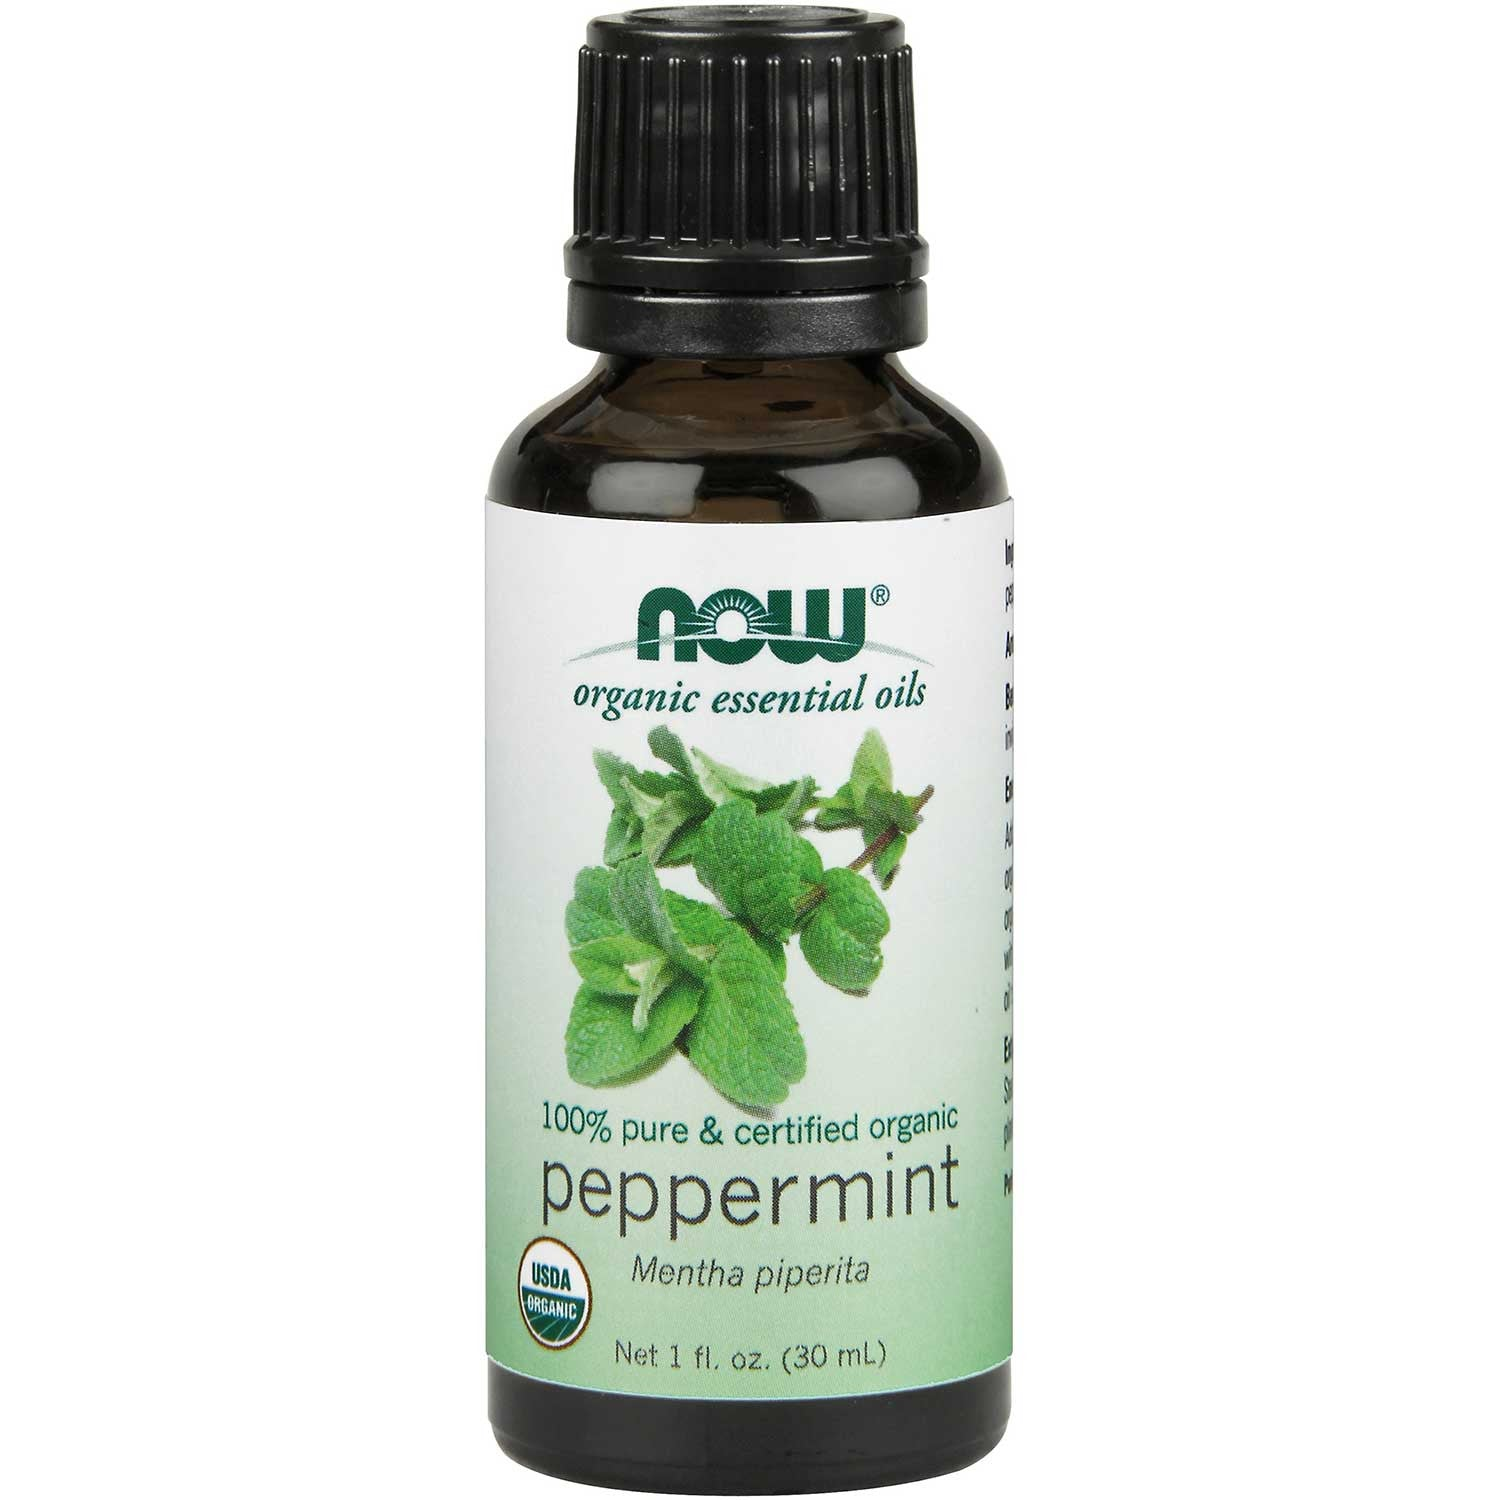 NOW Organic Essential Oil - Peppermint, 30 ml.-NaturesWisdom